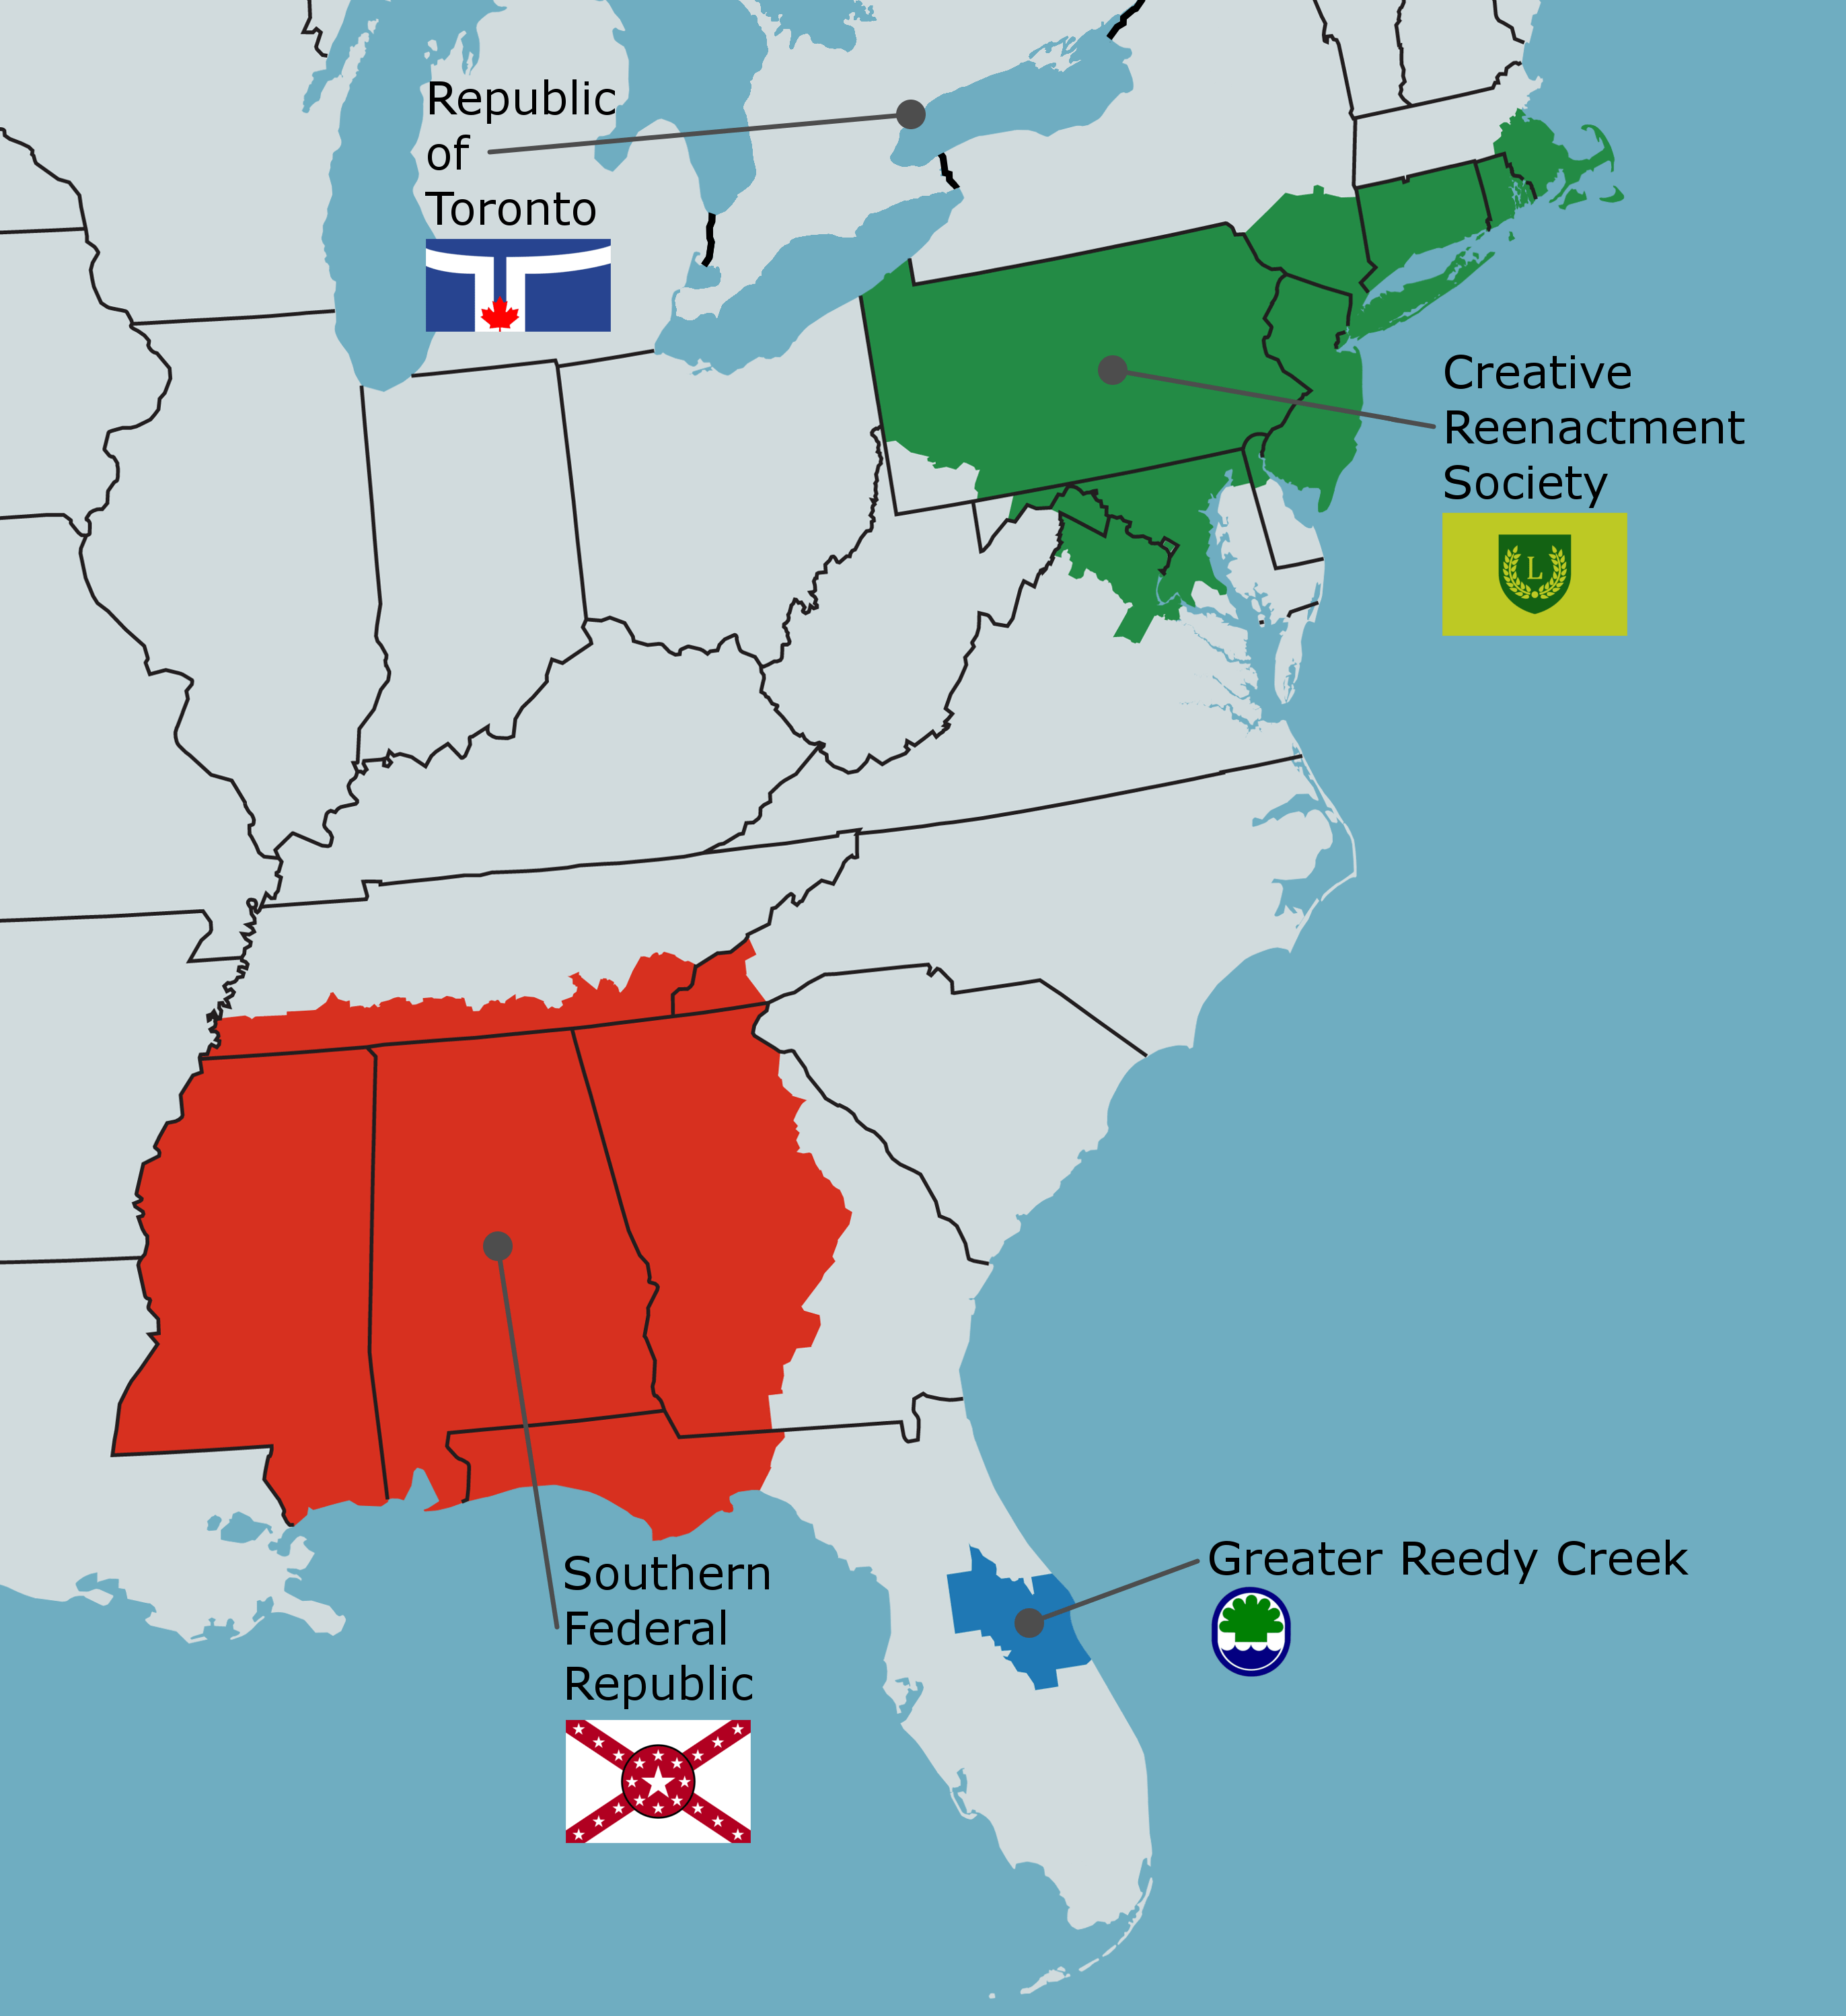 London Calling Map Of The North American East Coast